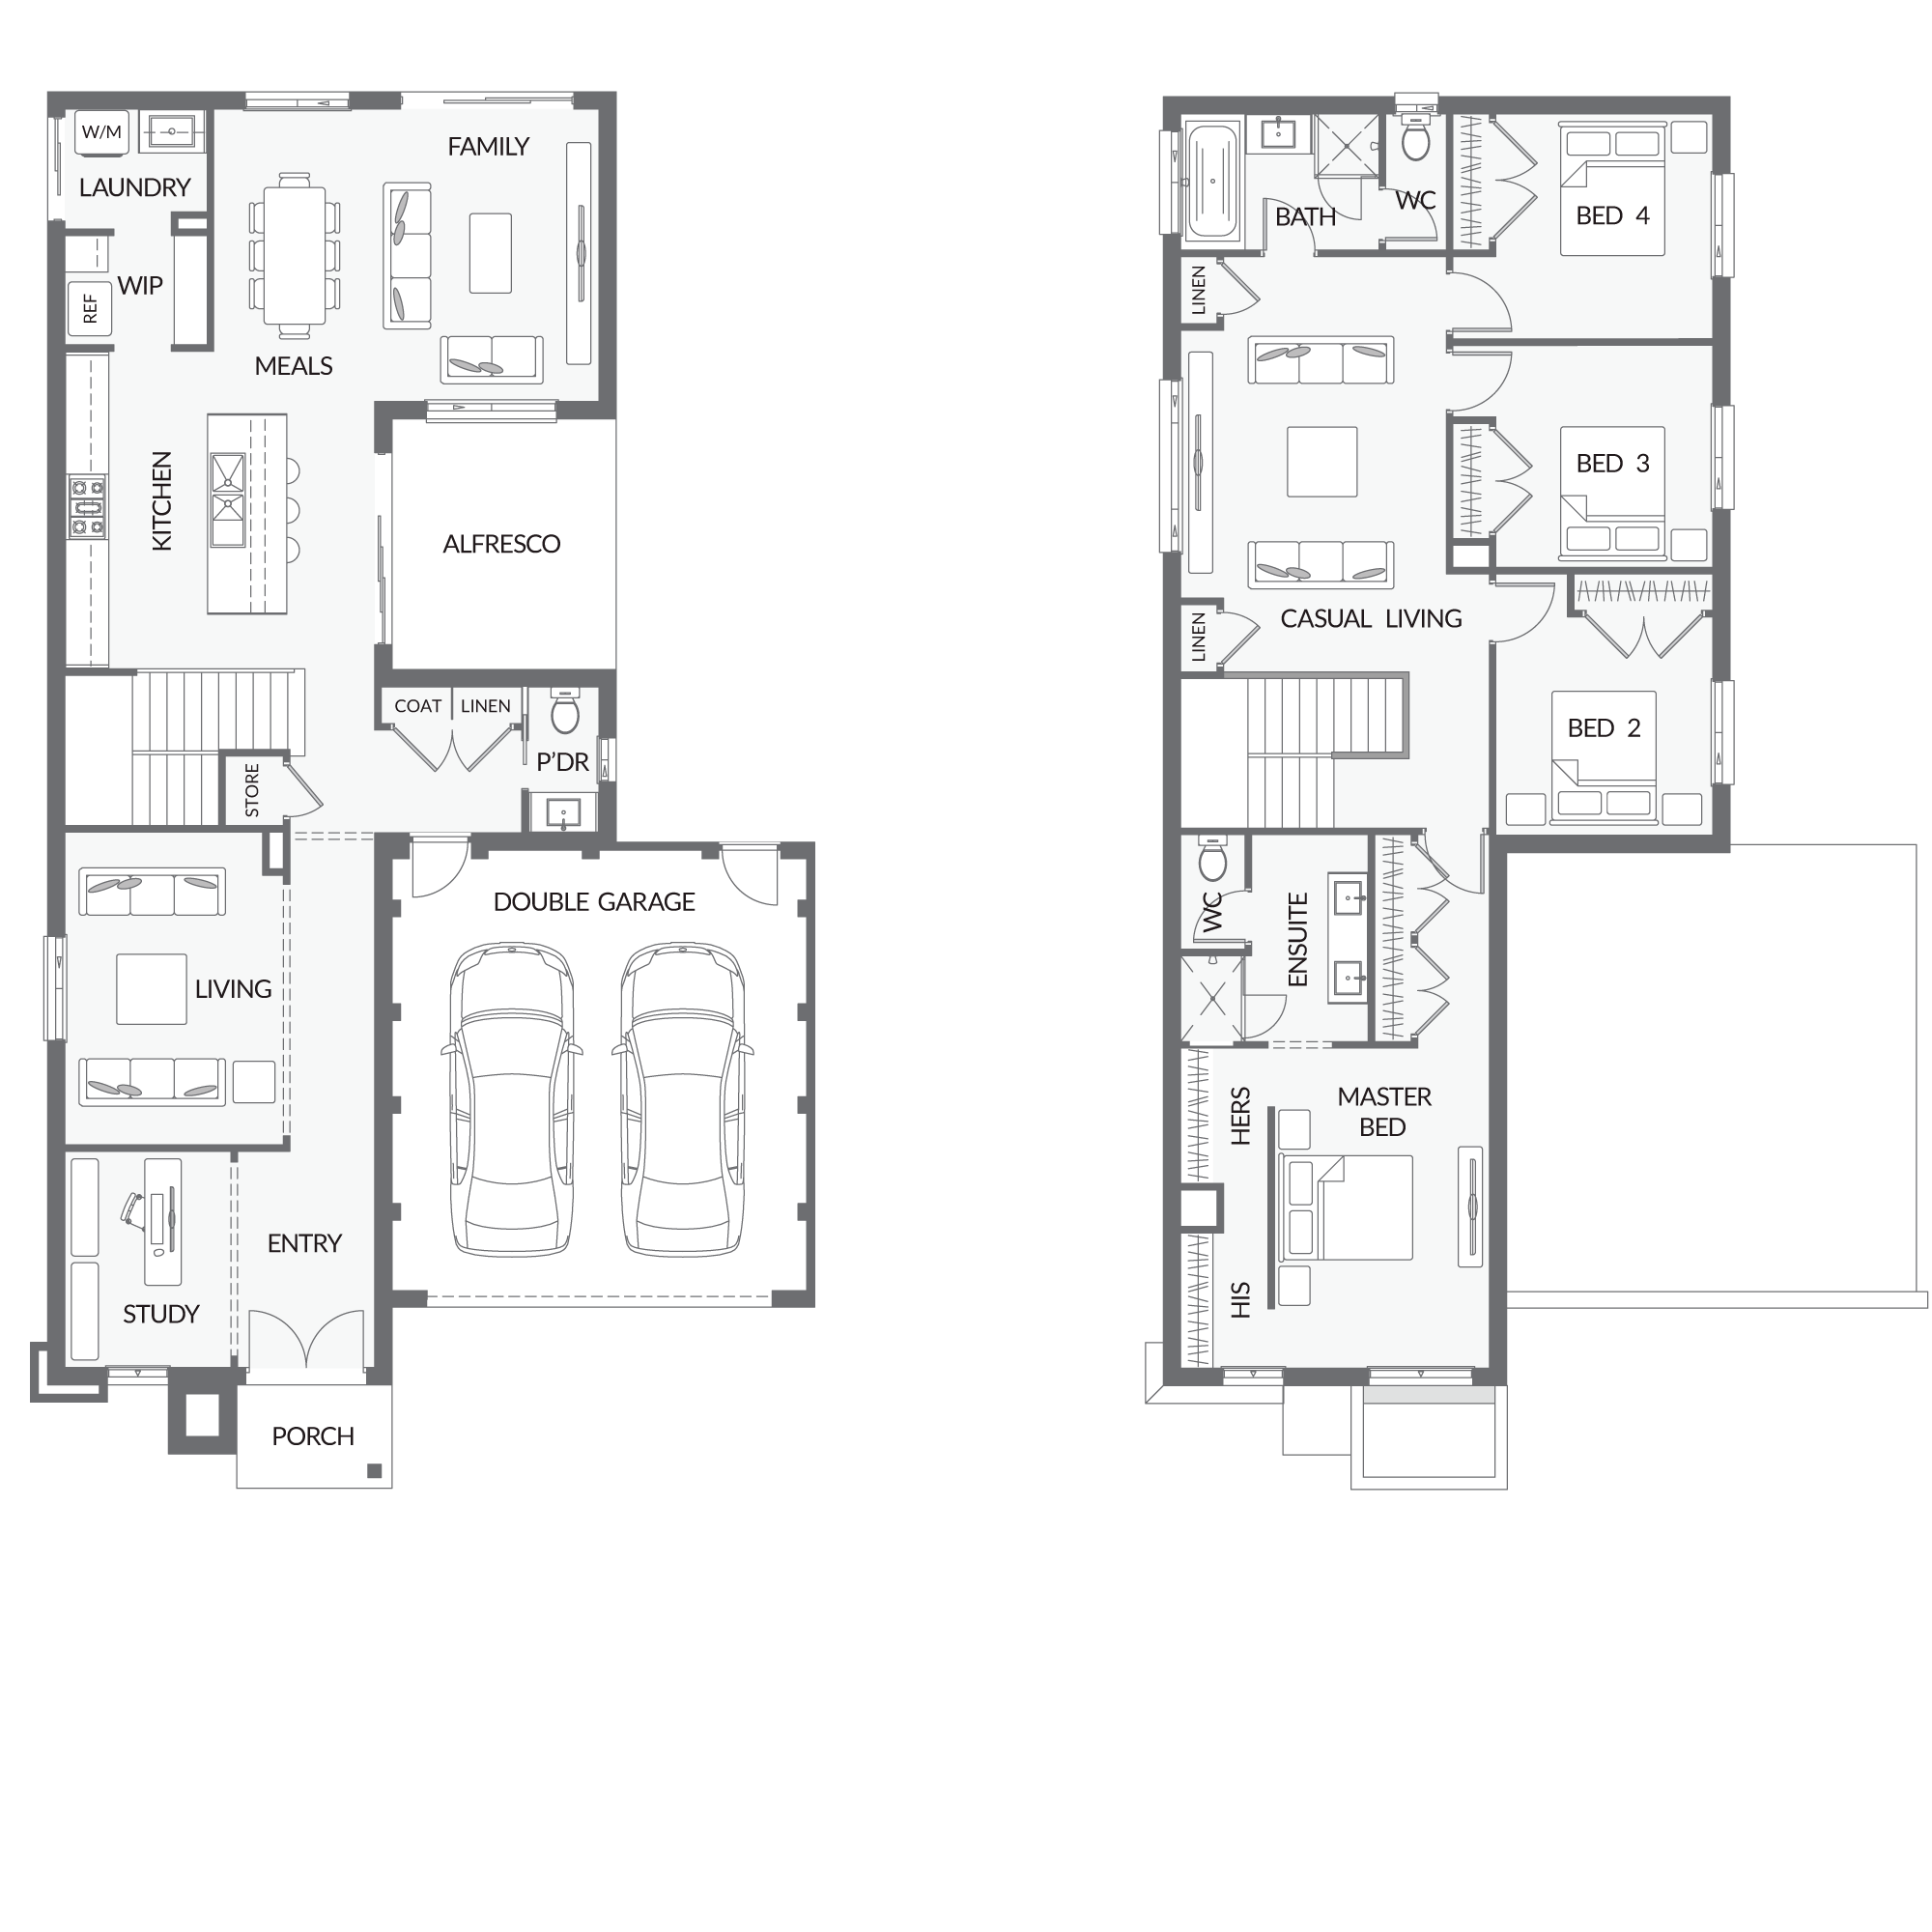 Pin By Mercedes Mora On House Container House Design House Plans Build My Own House